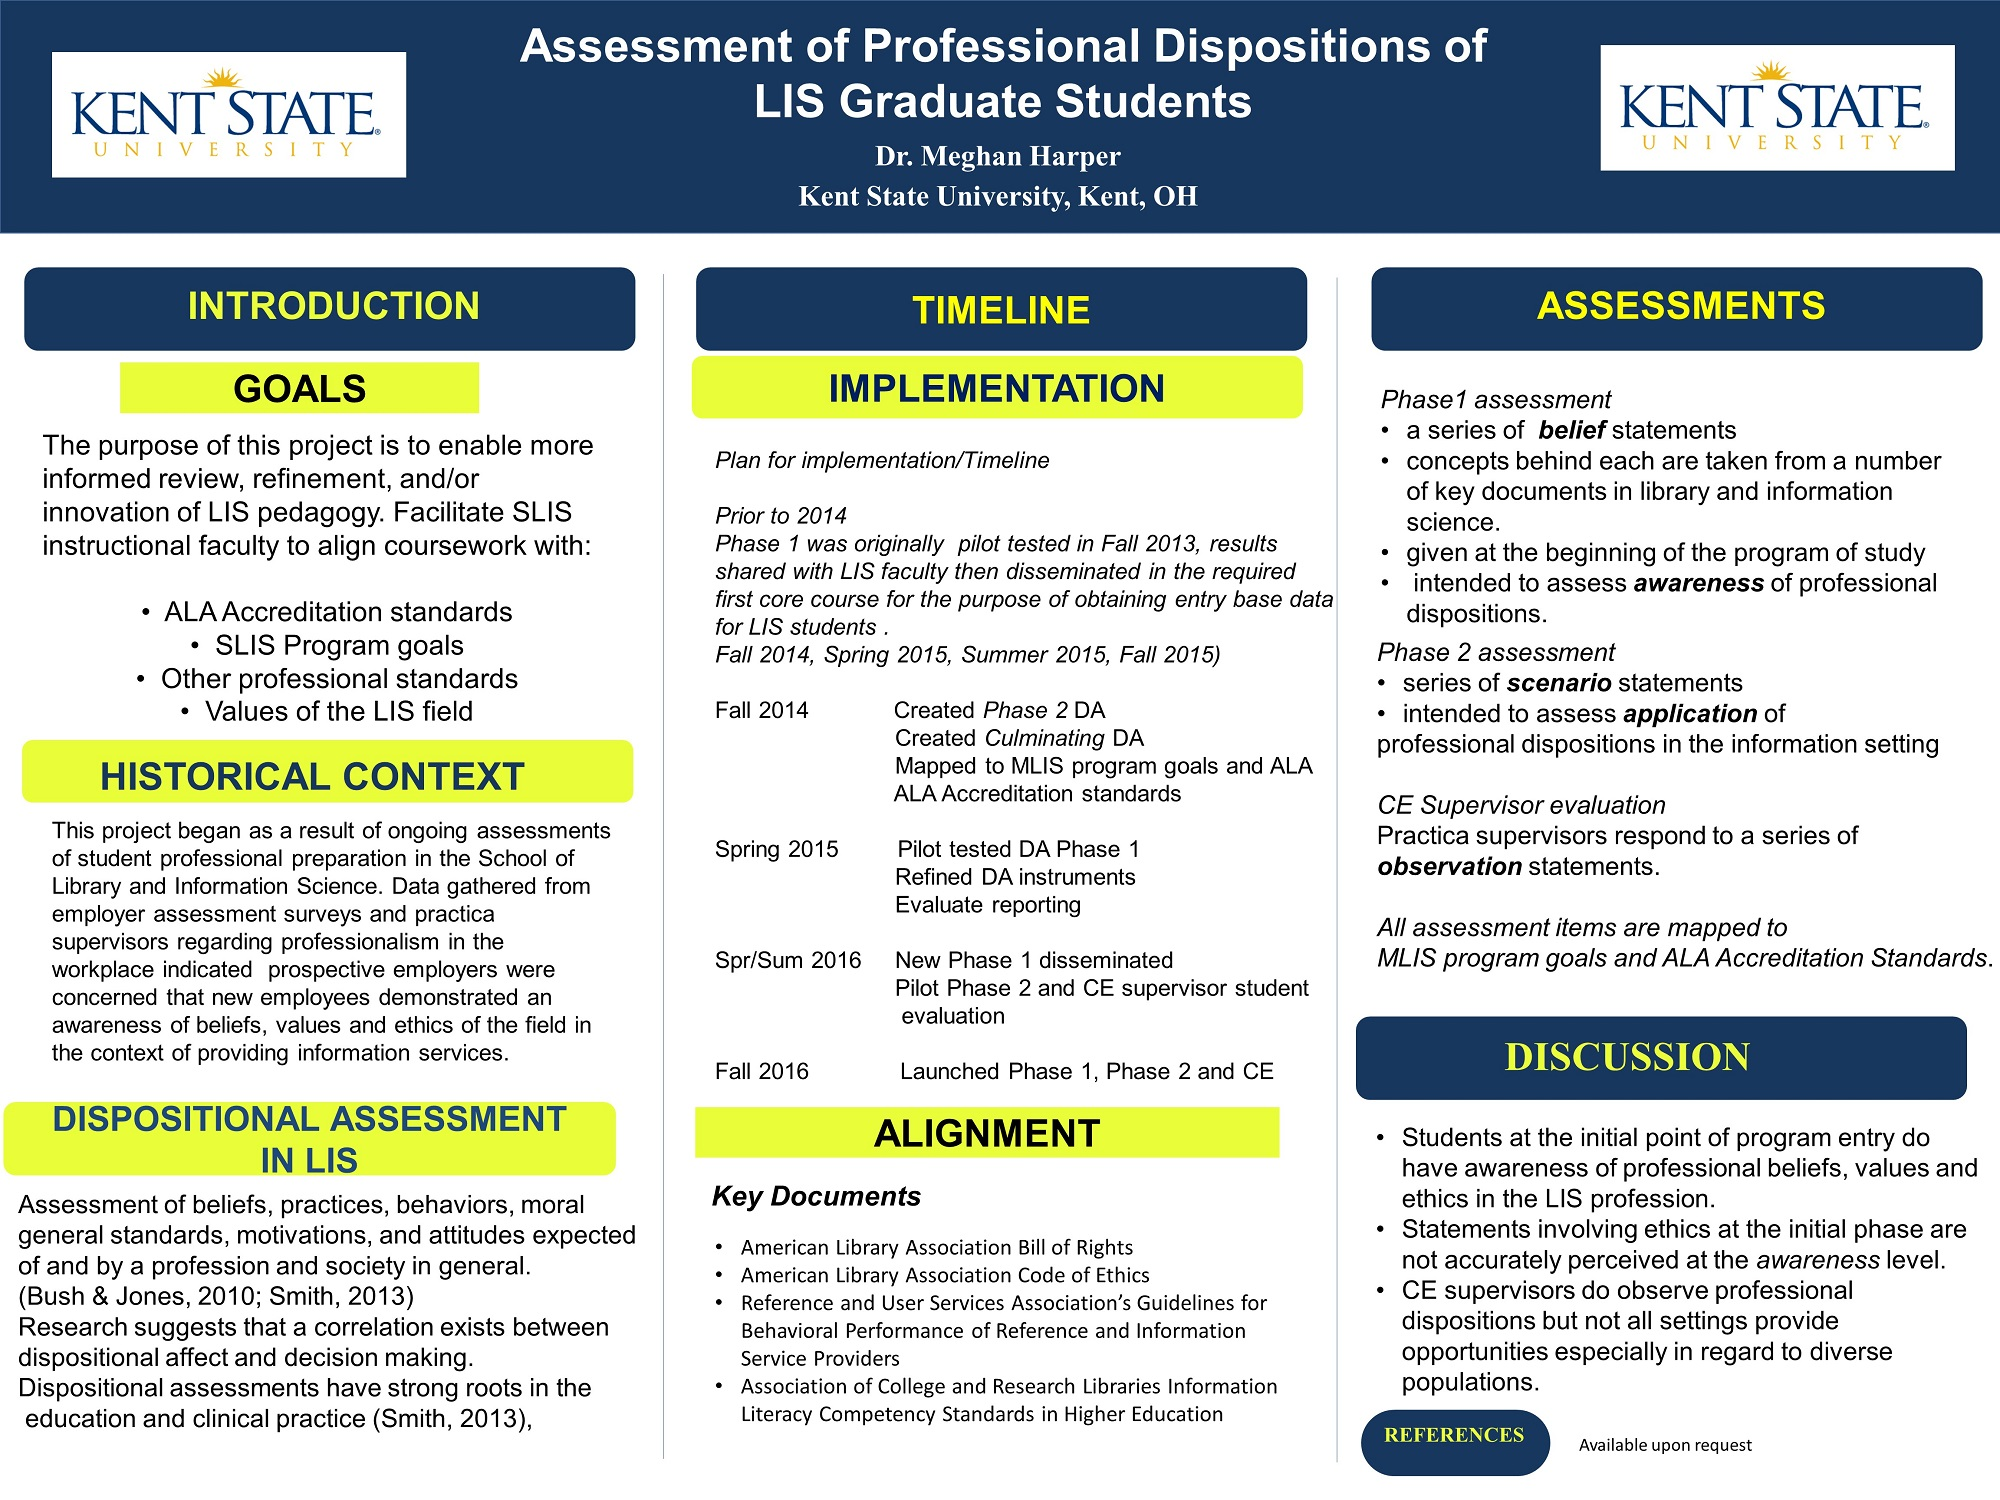 Research Poster - Dr. Harper - Assessment of Professional Dispositions of LIS Graduate Students